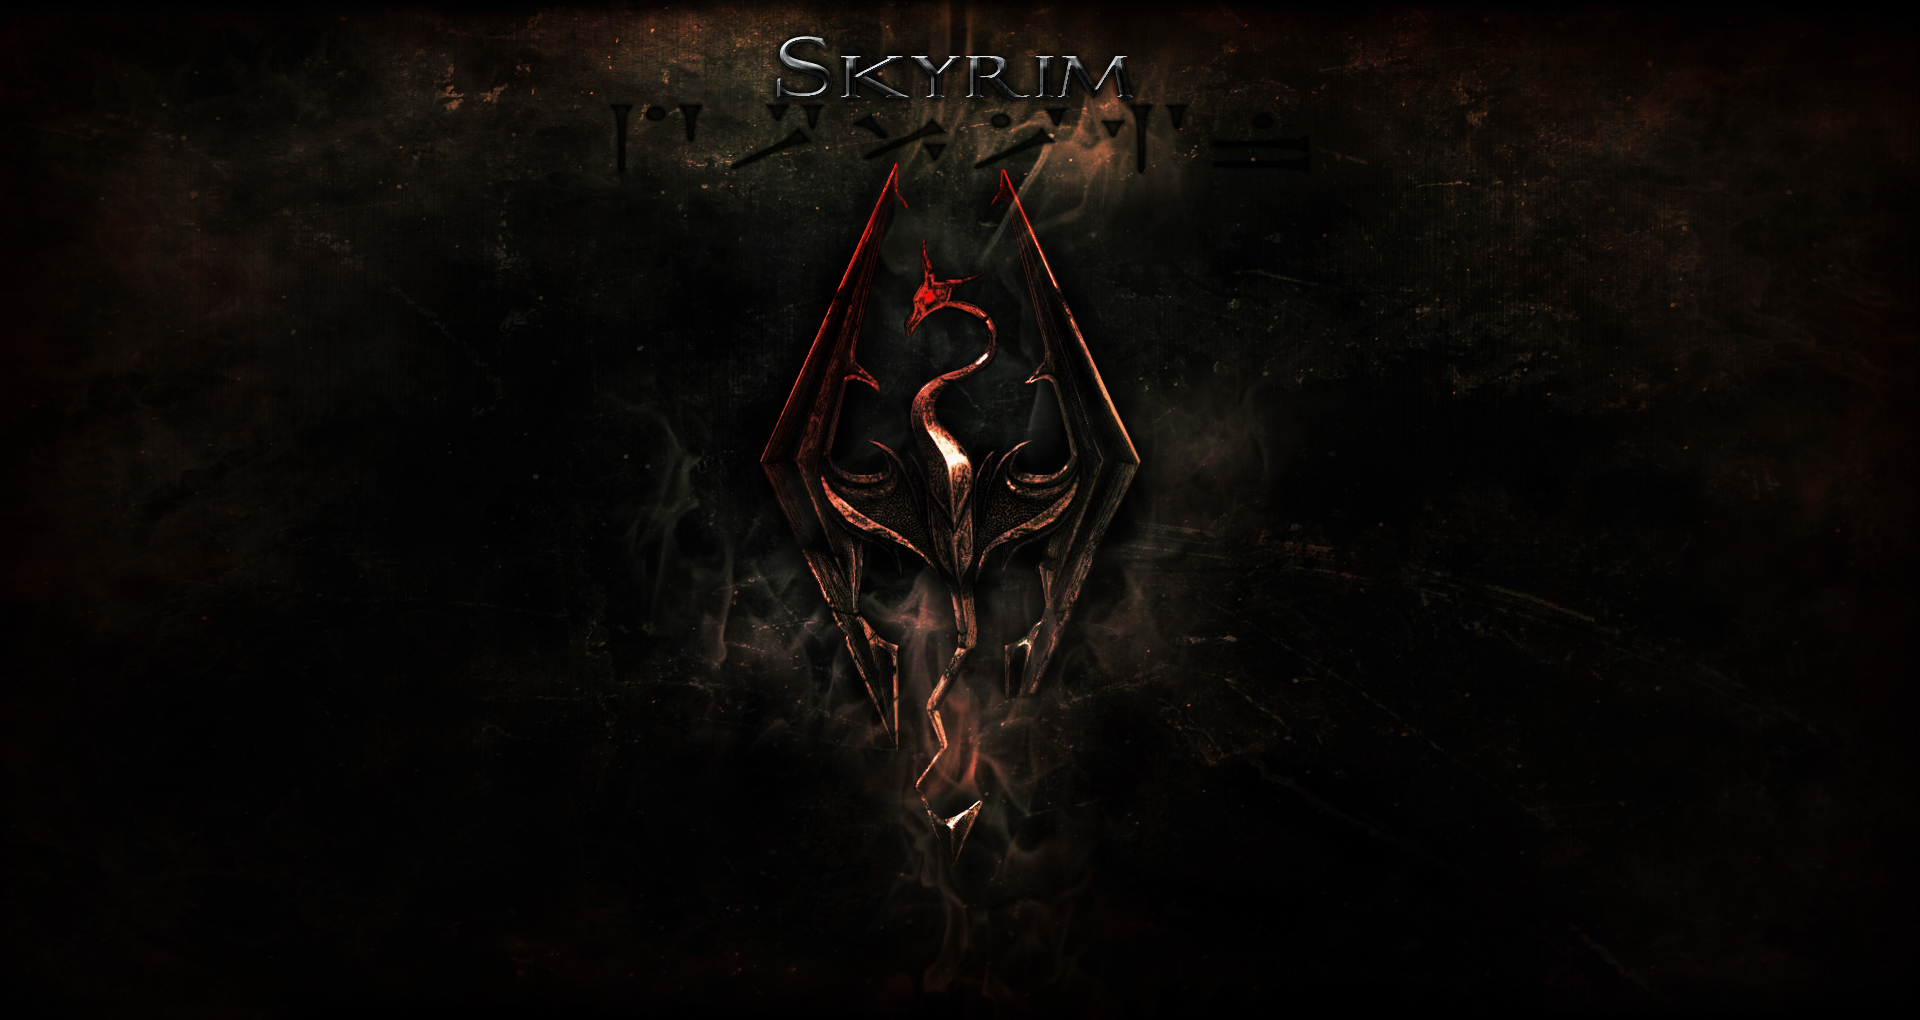 Skyrim wallpaper 1920x1020